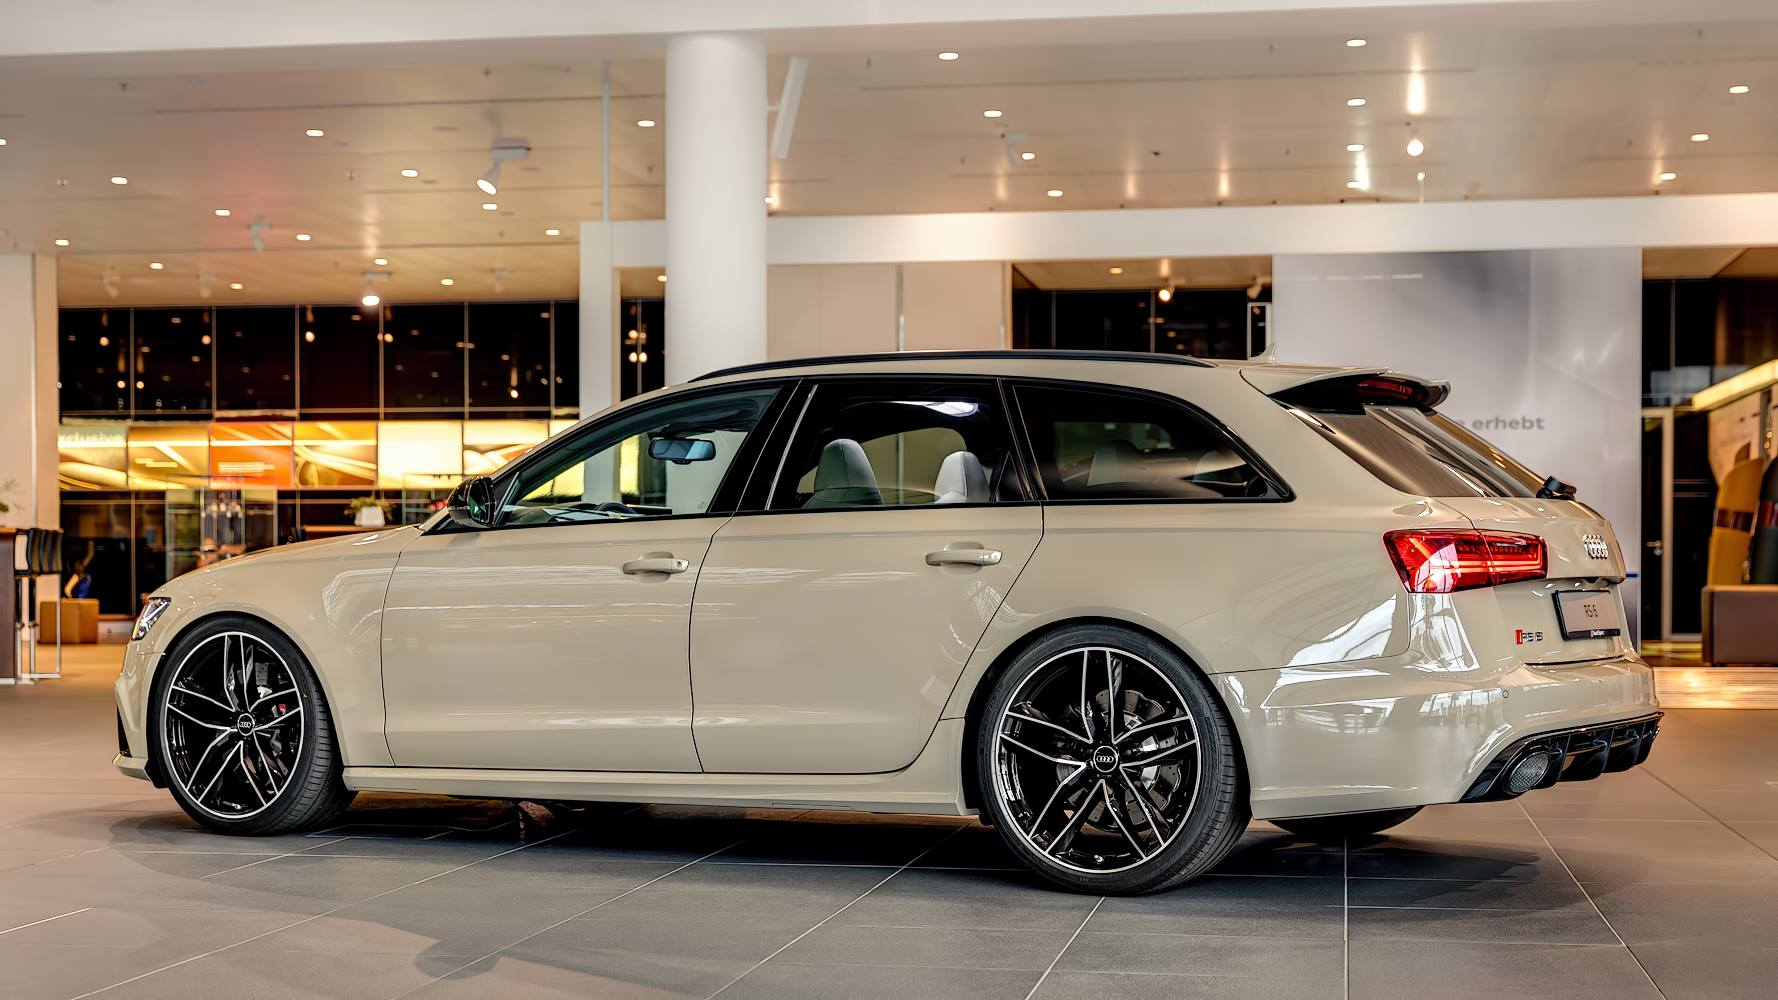 Audi rs6 wagon 060 6